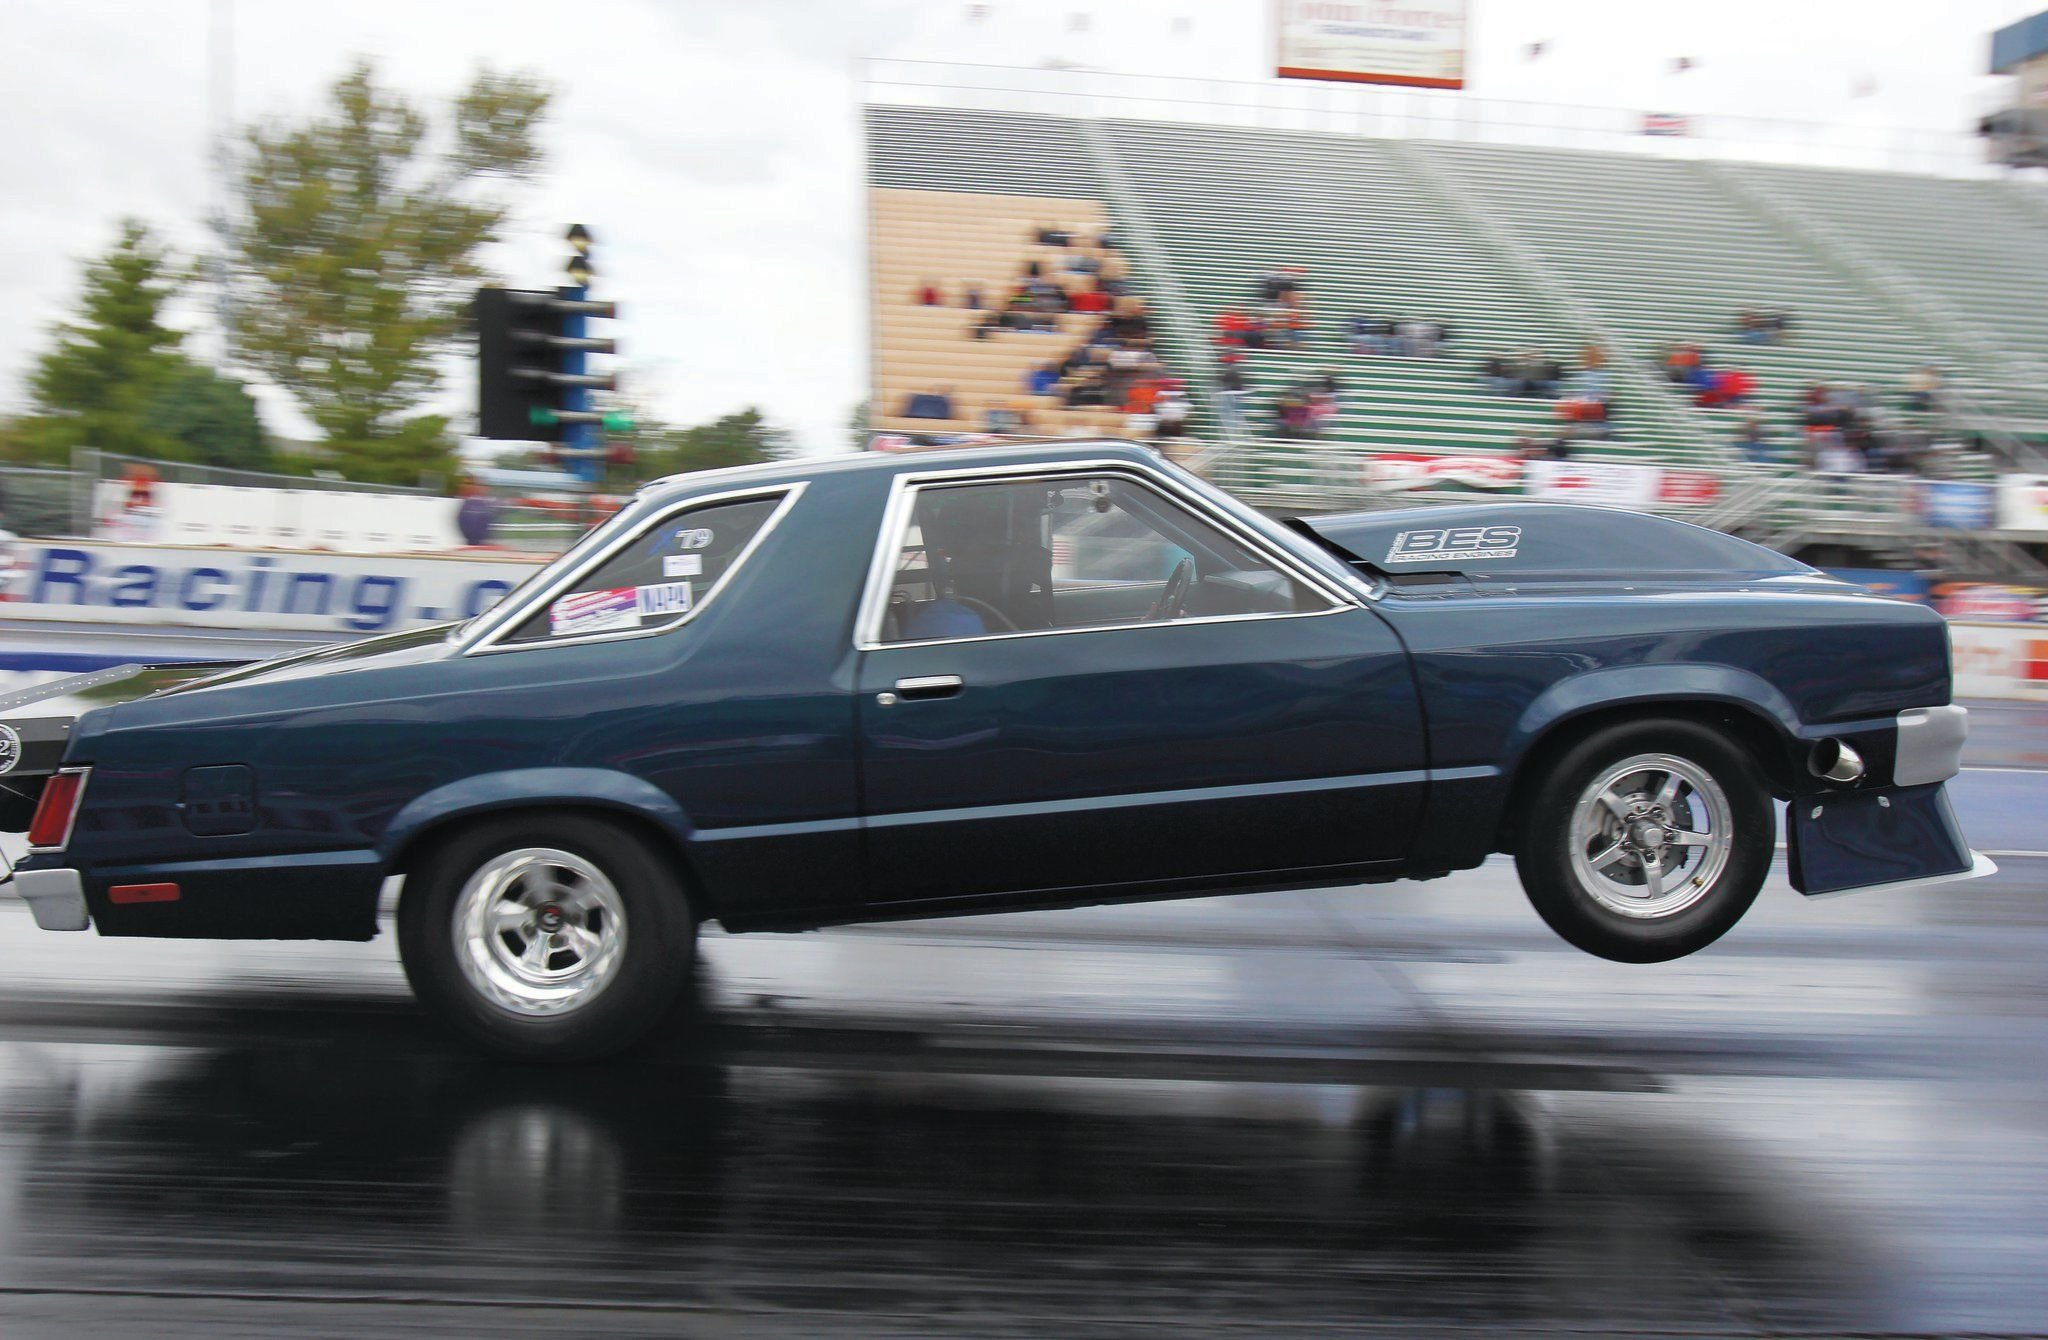 1979 Plymouth Fairmont Drag Racing-02 wallpaper